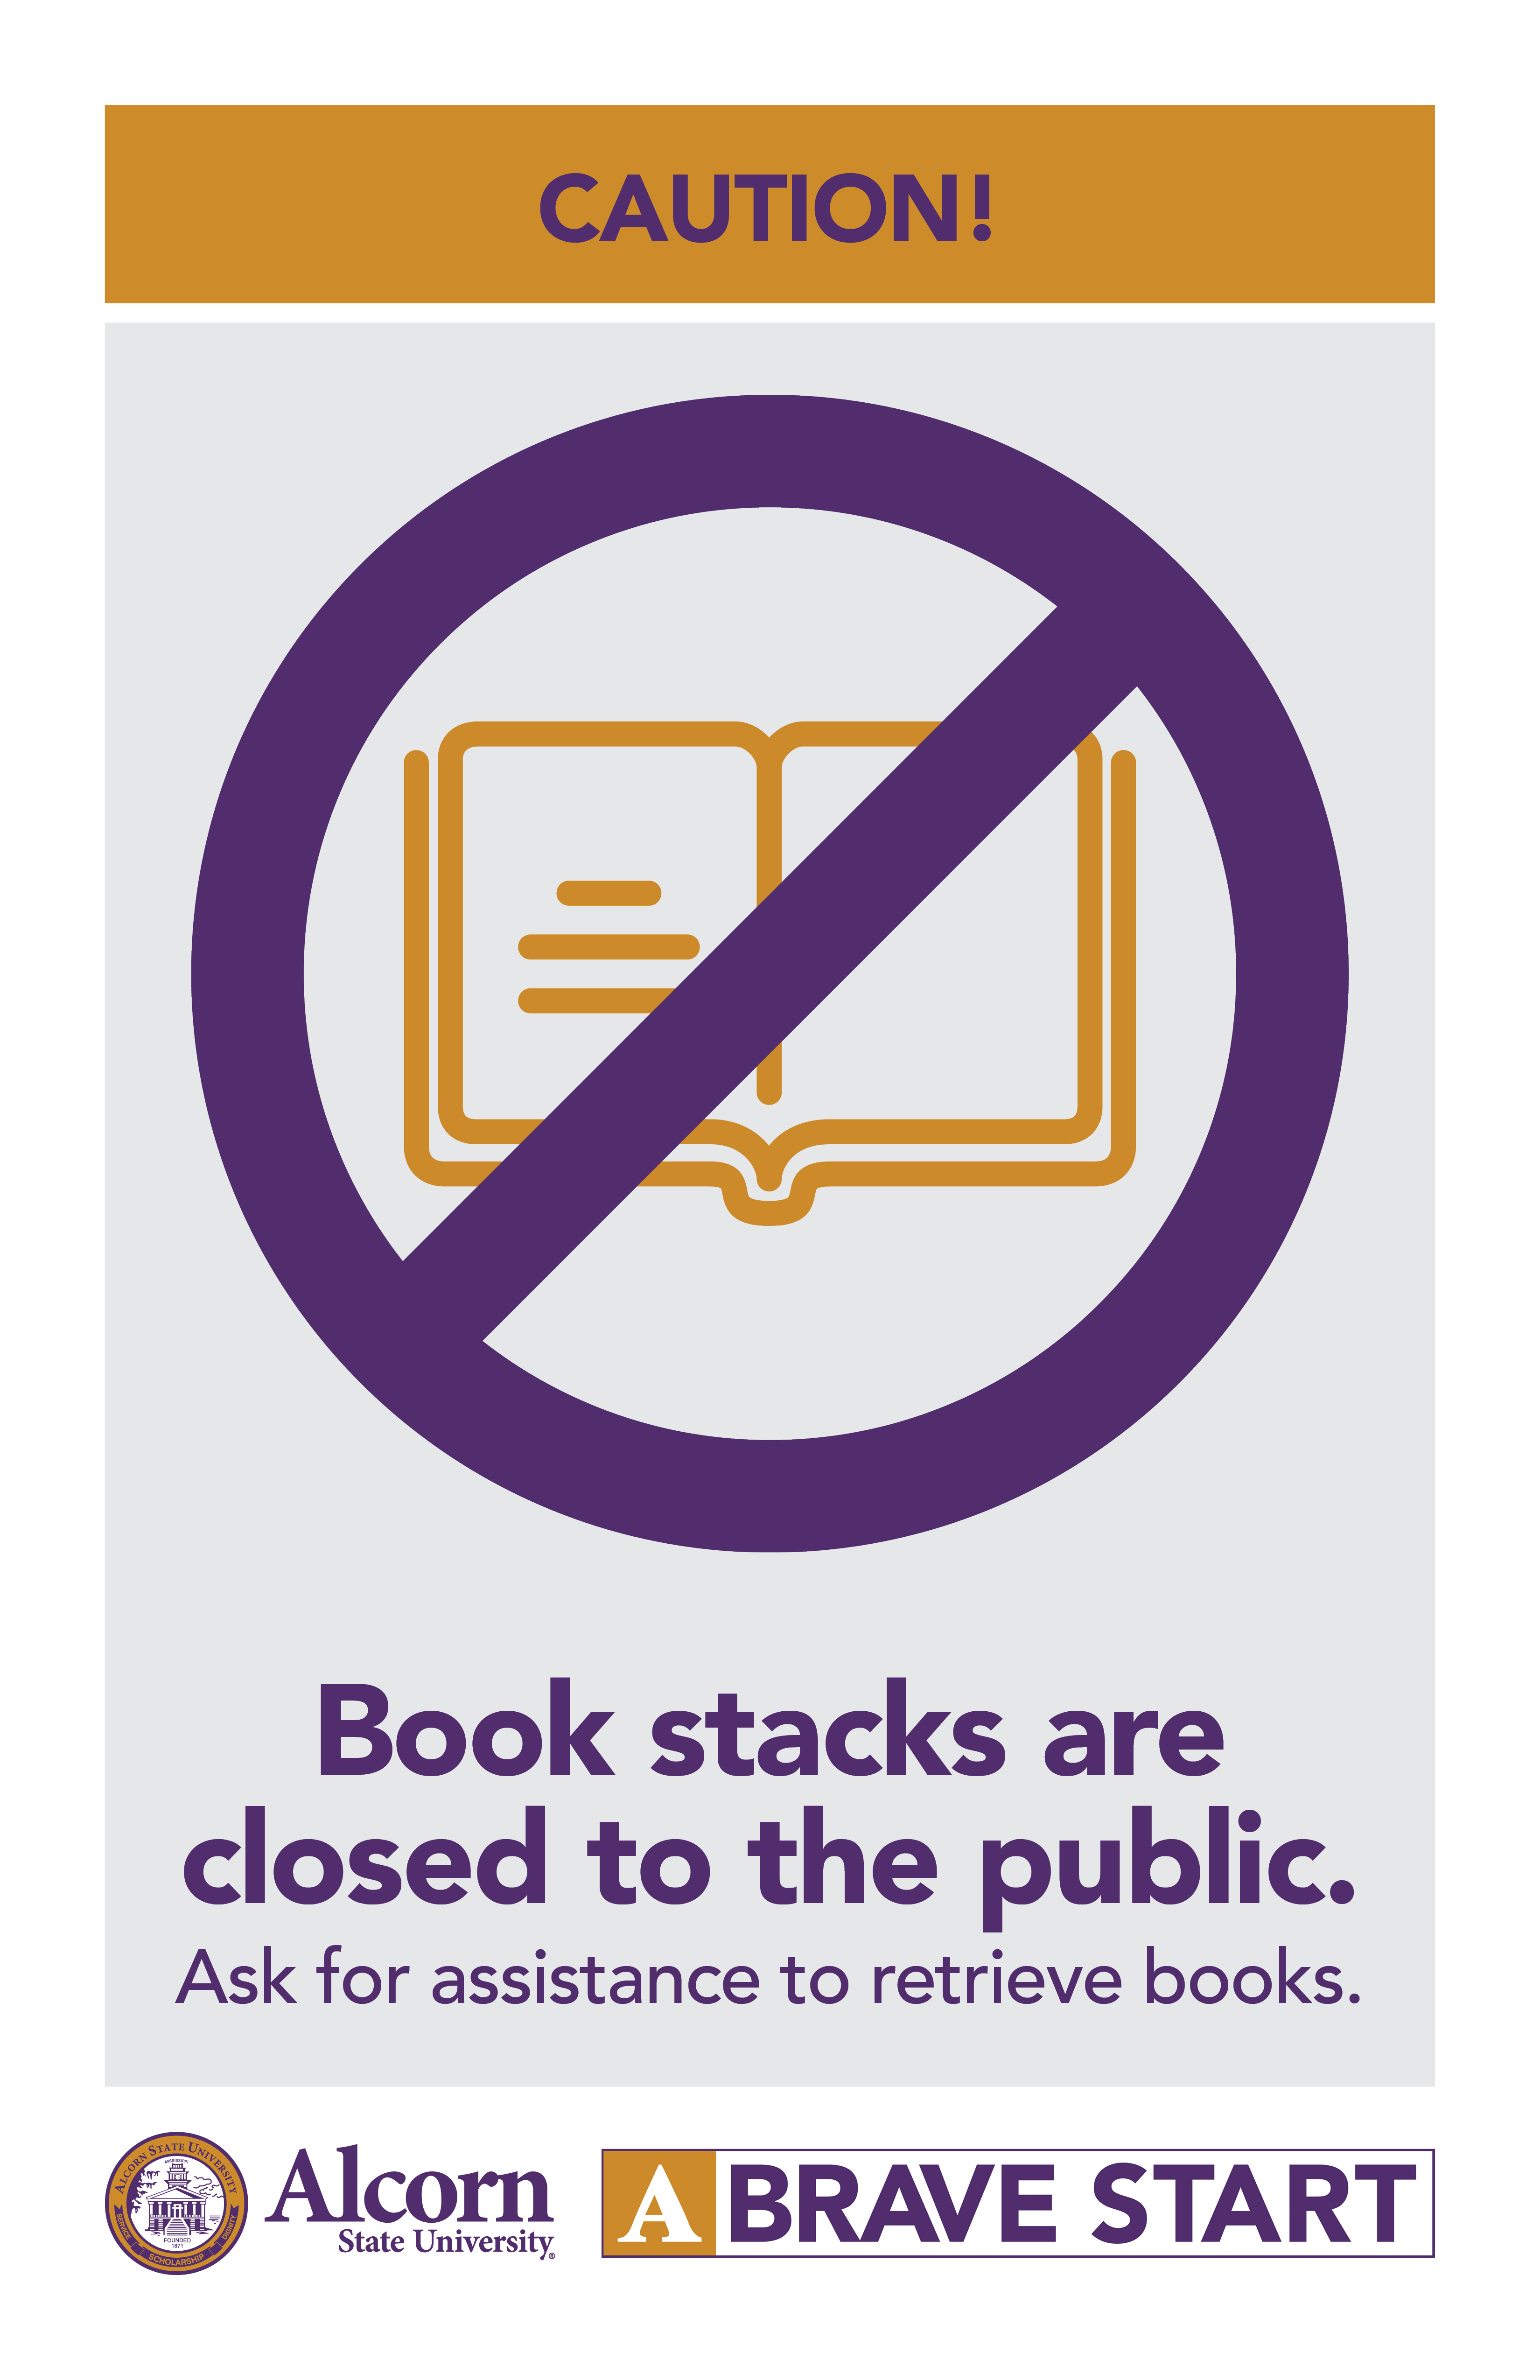 CAUTION! (Picture of book with closed mark over it) Book stacks are closed to the public. Ask for assistance to retrieve books. (Alcorn logo mark. A Brave Start logo mark.)